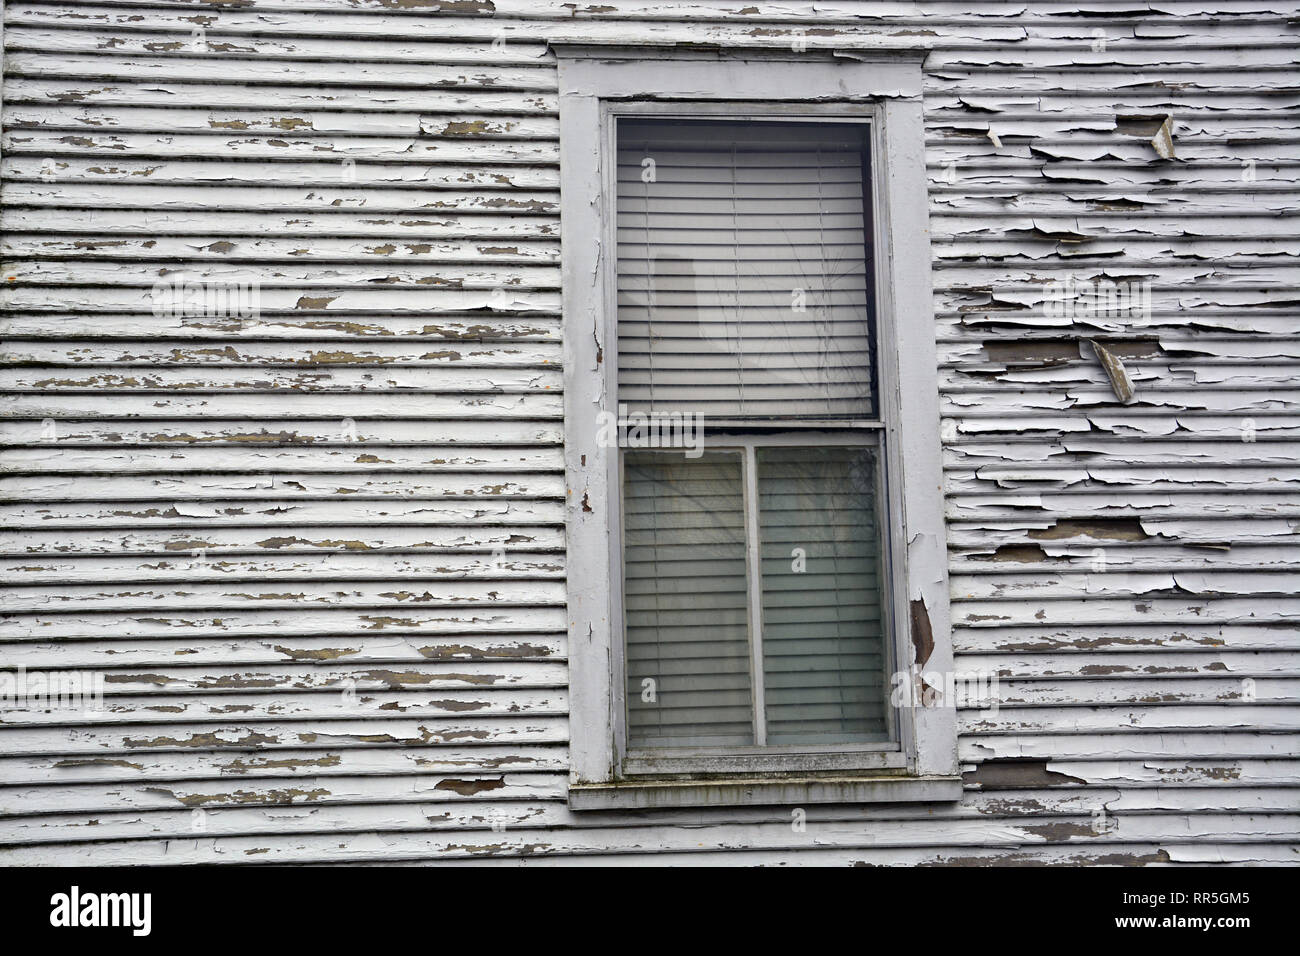 Paint pealing on the wood siding of an old home in North Carolina. - Stock Image